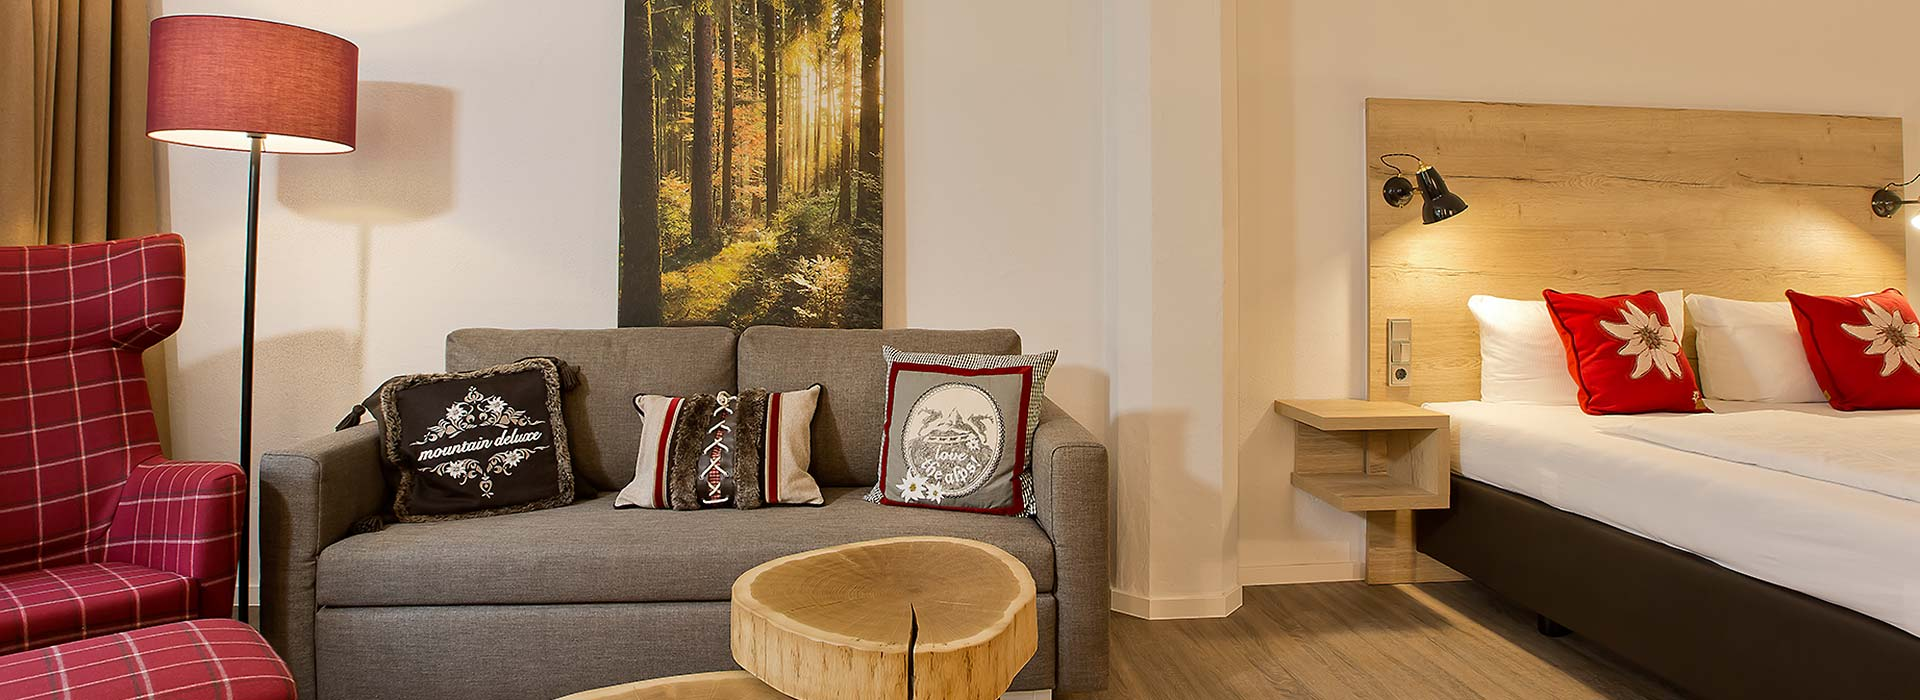 "Zimmer, Appartements & Suiten im ""elements"" Oberstdorf · Hotel · Christlessee"